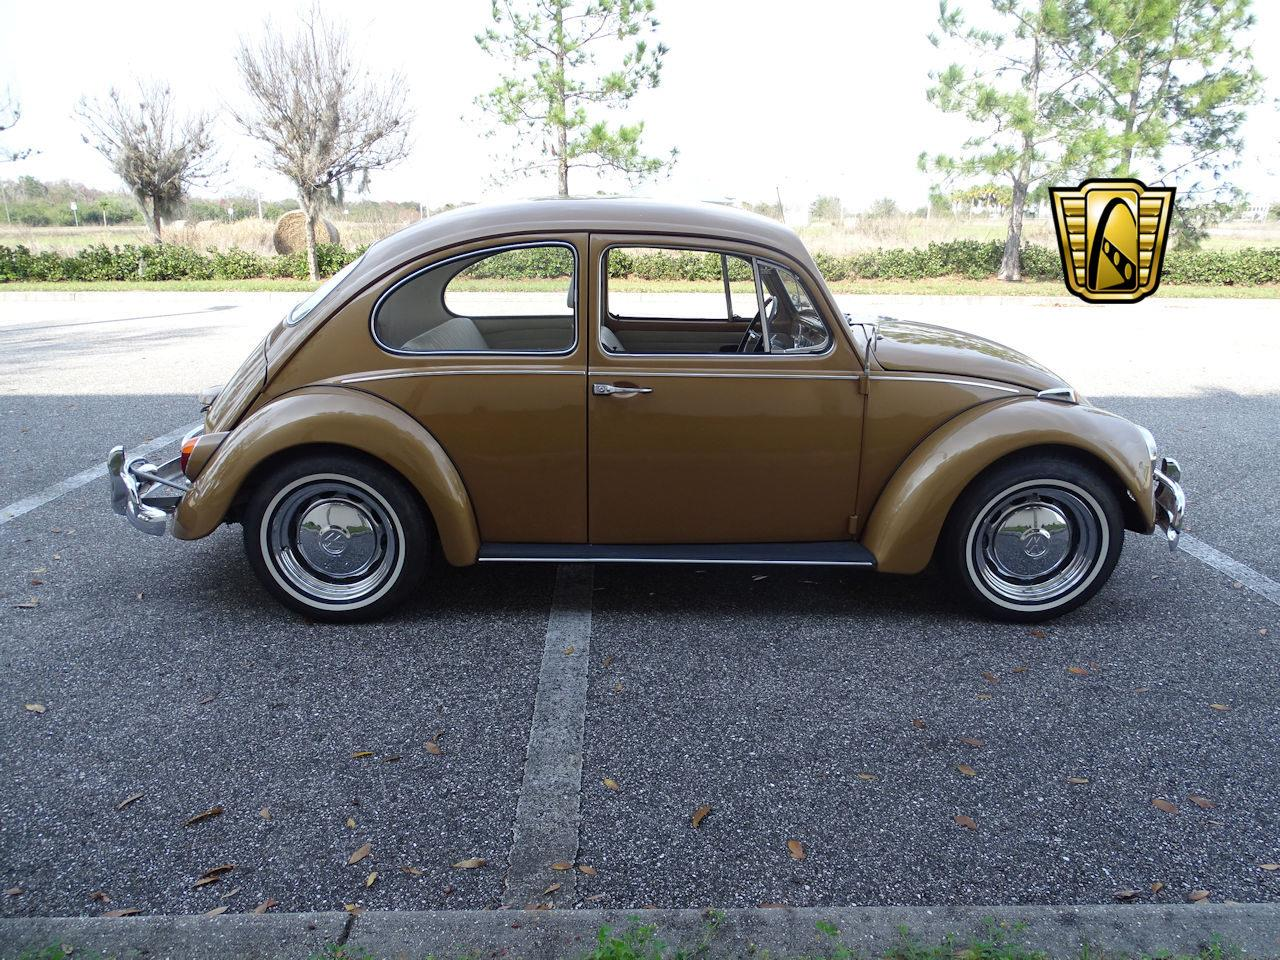 Large Picture of '67 Volkswagen Beetle located in Florida - $18,995.00 - MTLL